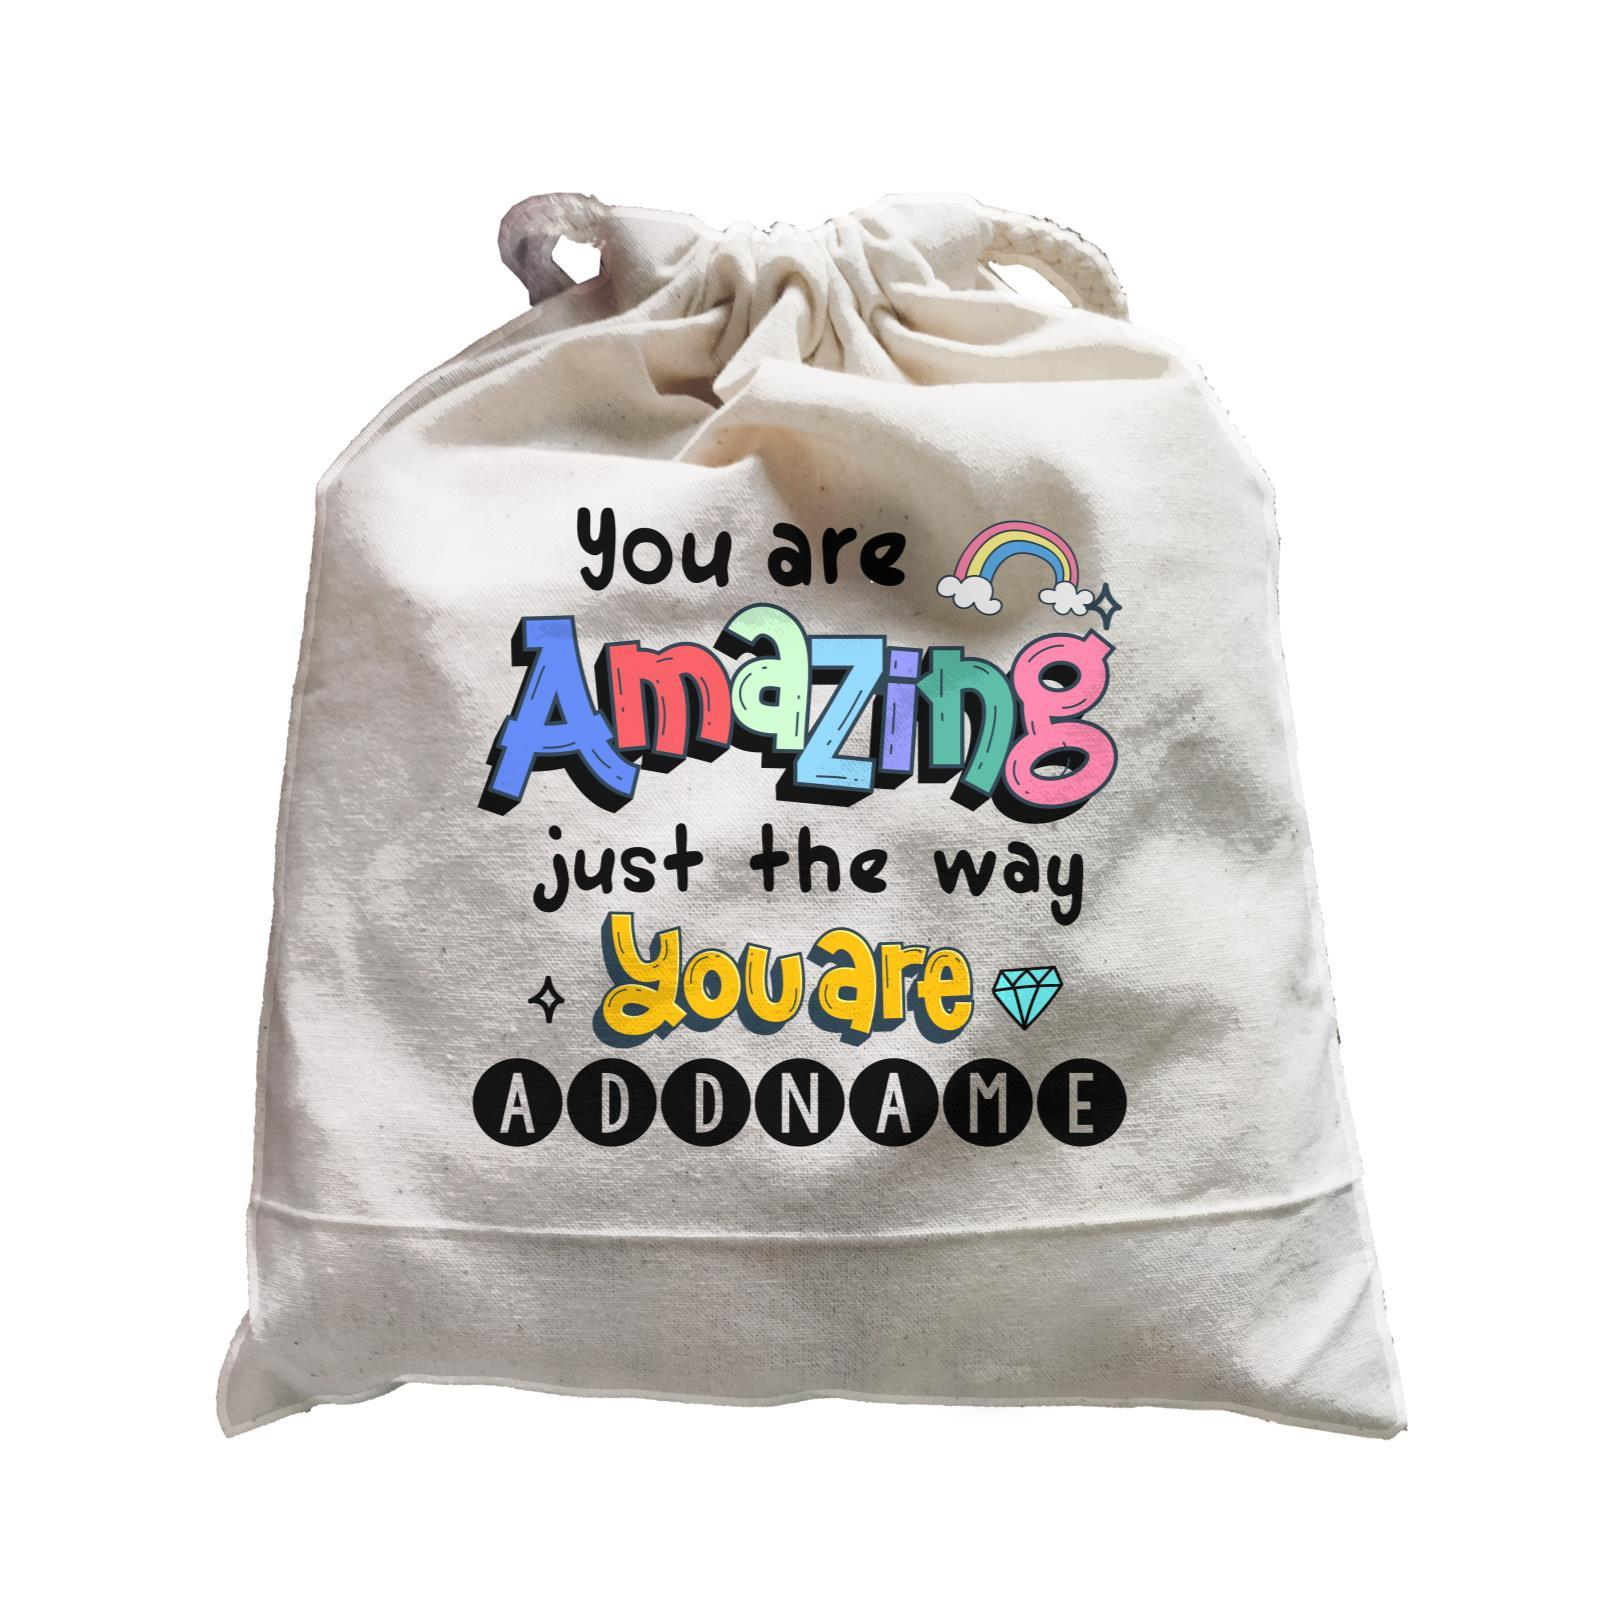 Children's Day Gift Series You Are Amazing Just The Way You Are Addname  Satchel